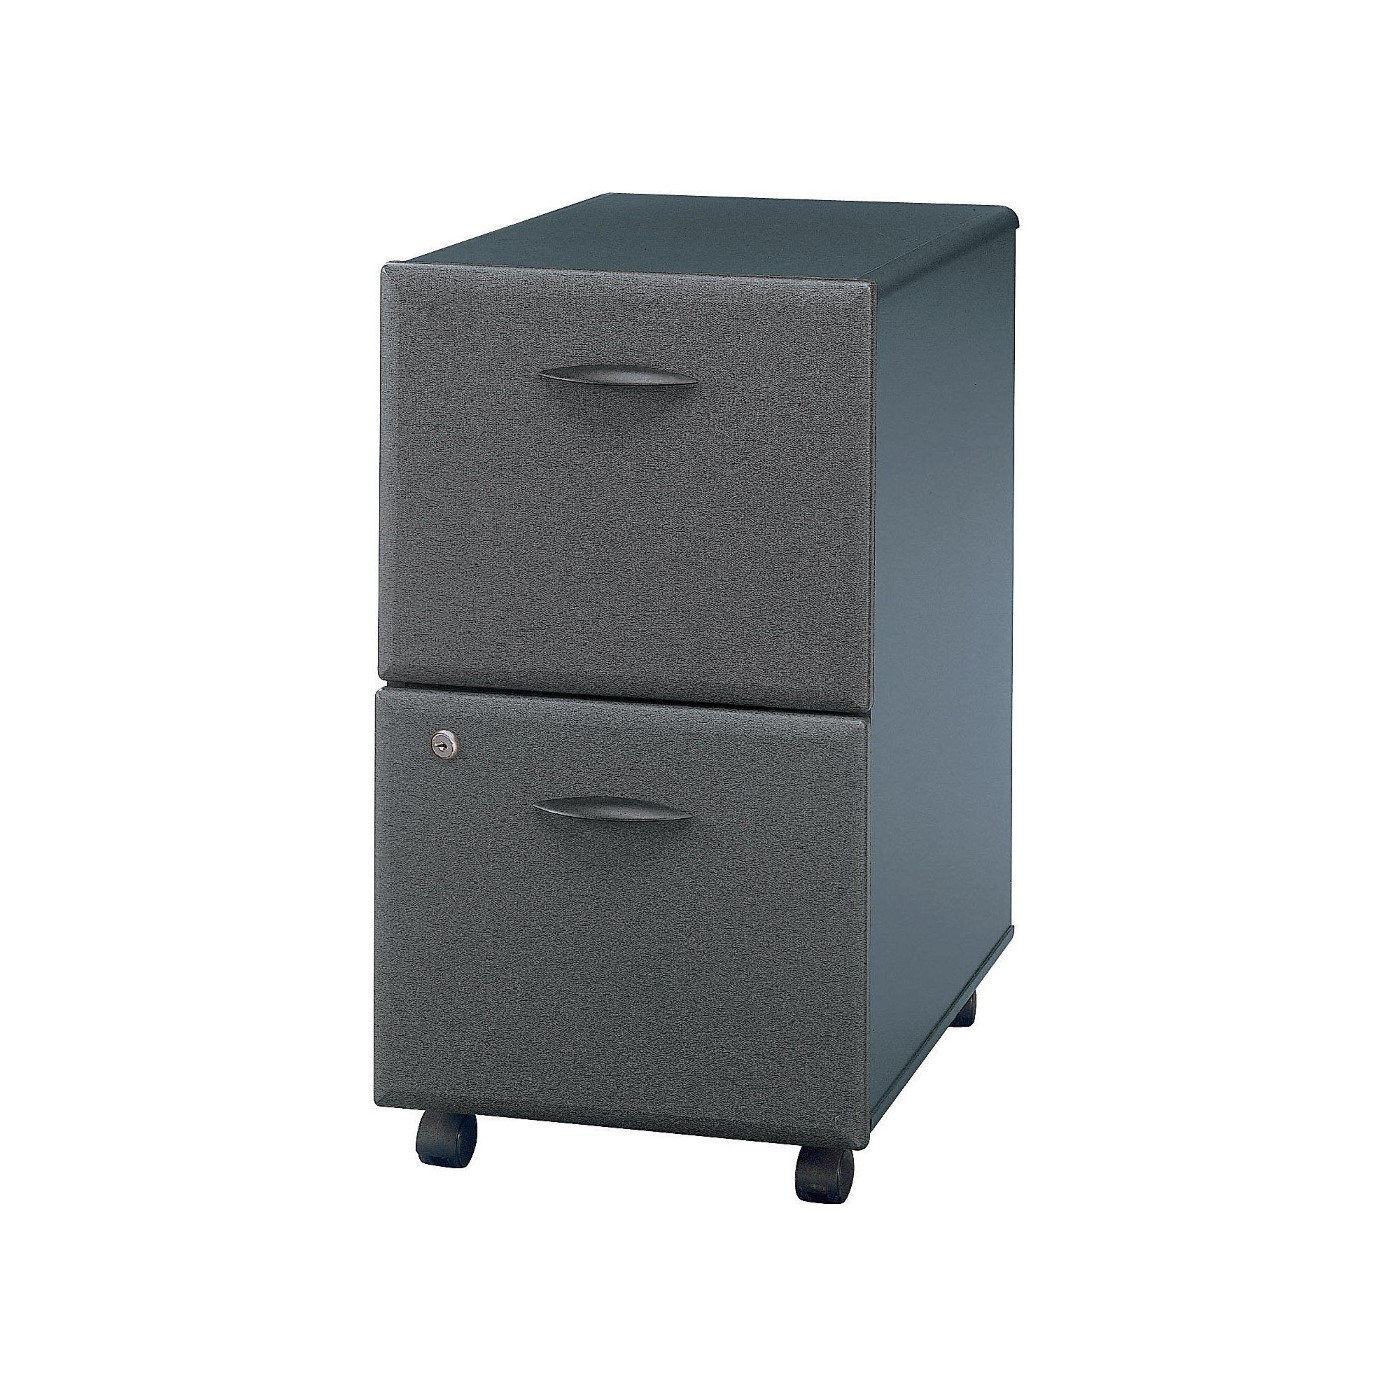 <font color=#c60><b>BUSH BUSINESS FURNITURE SERIES A 2 DRAWER MOBILE FILE CABINET. FREE SHIPPING</font></b>